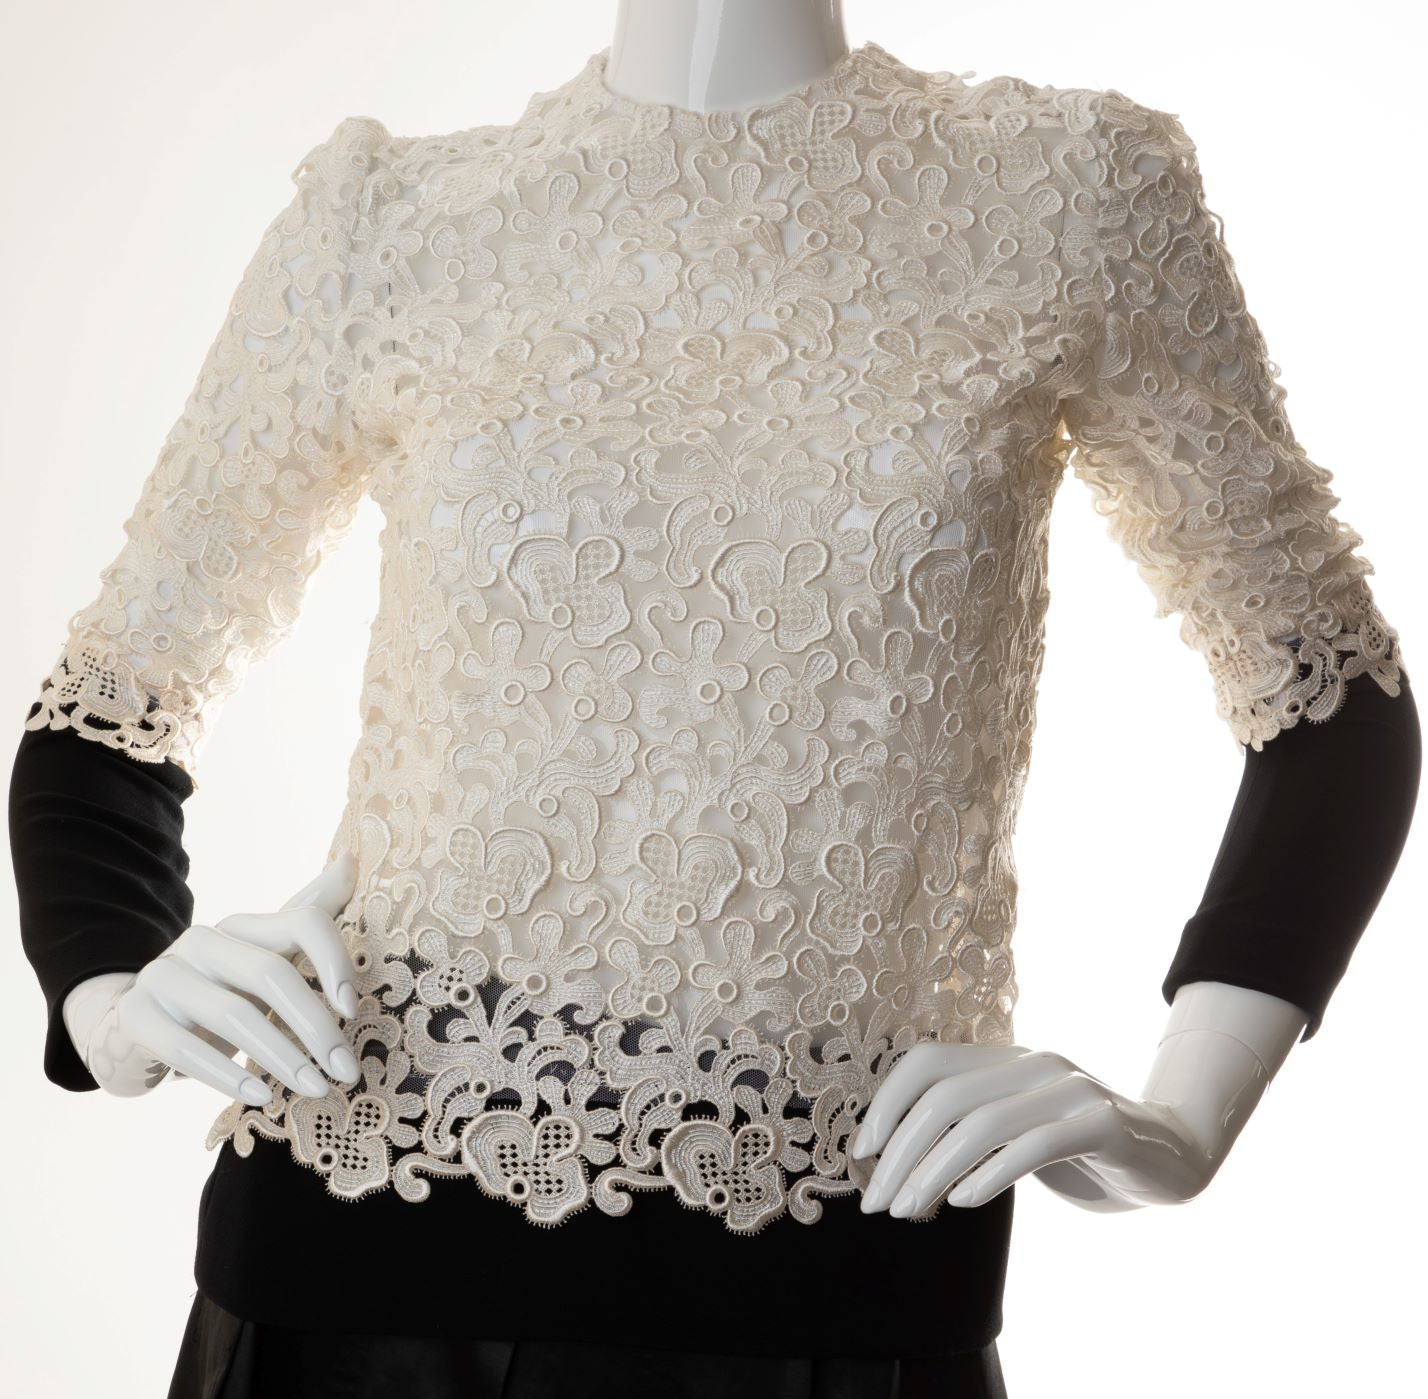 Emanuel Ungaro - Guipure Lace Top with Contrast Cuffs and Hemline